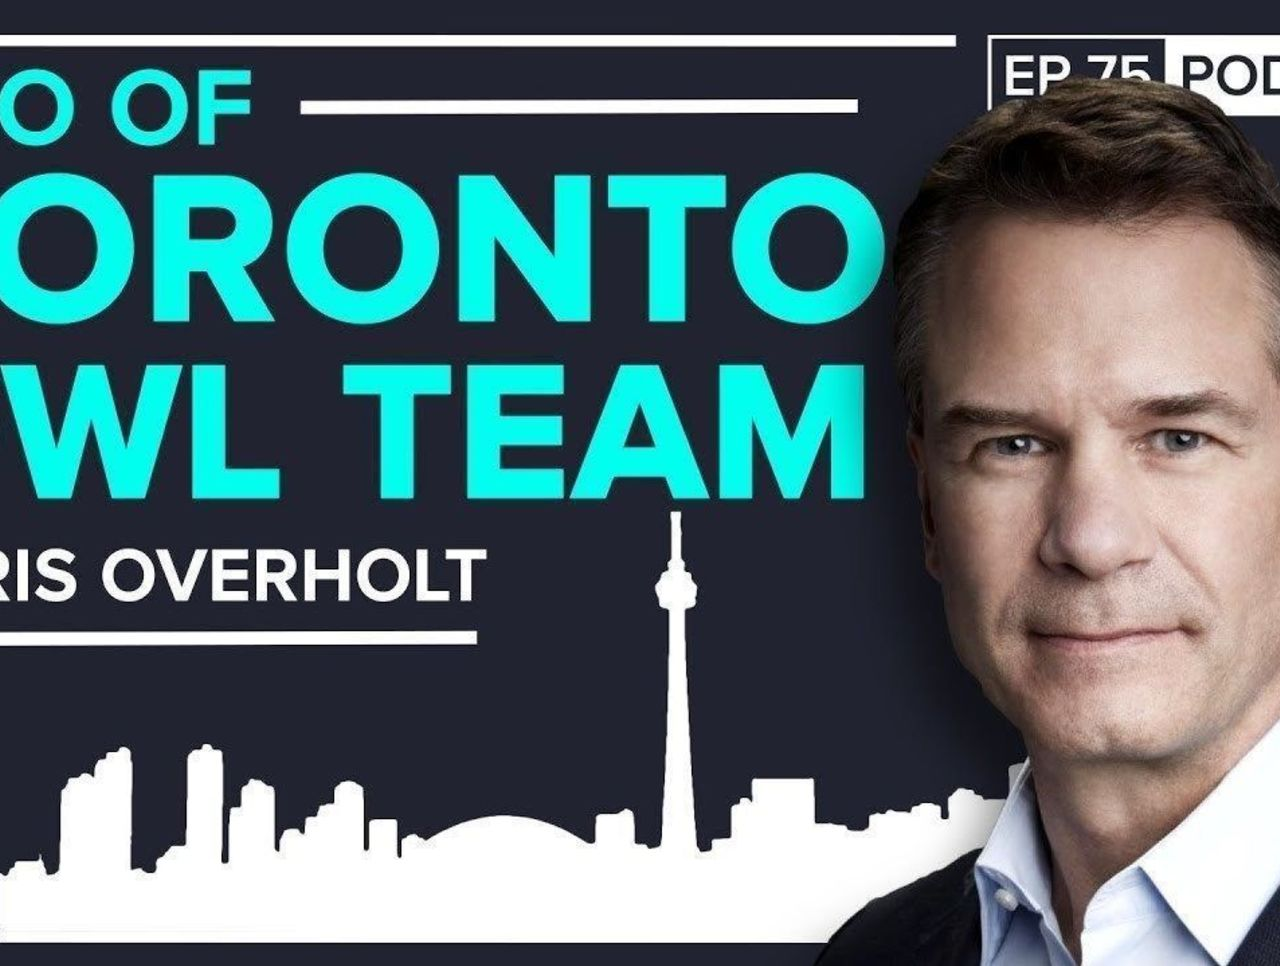 Toronto OWL franchise CEO talks winning over local fans, whether esports will ever be in the Olympics